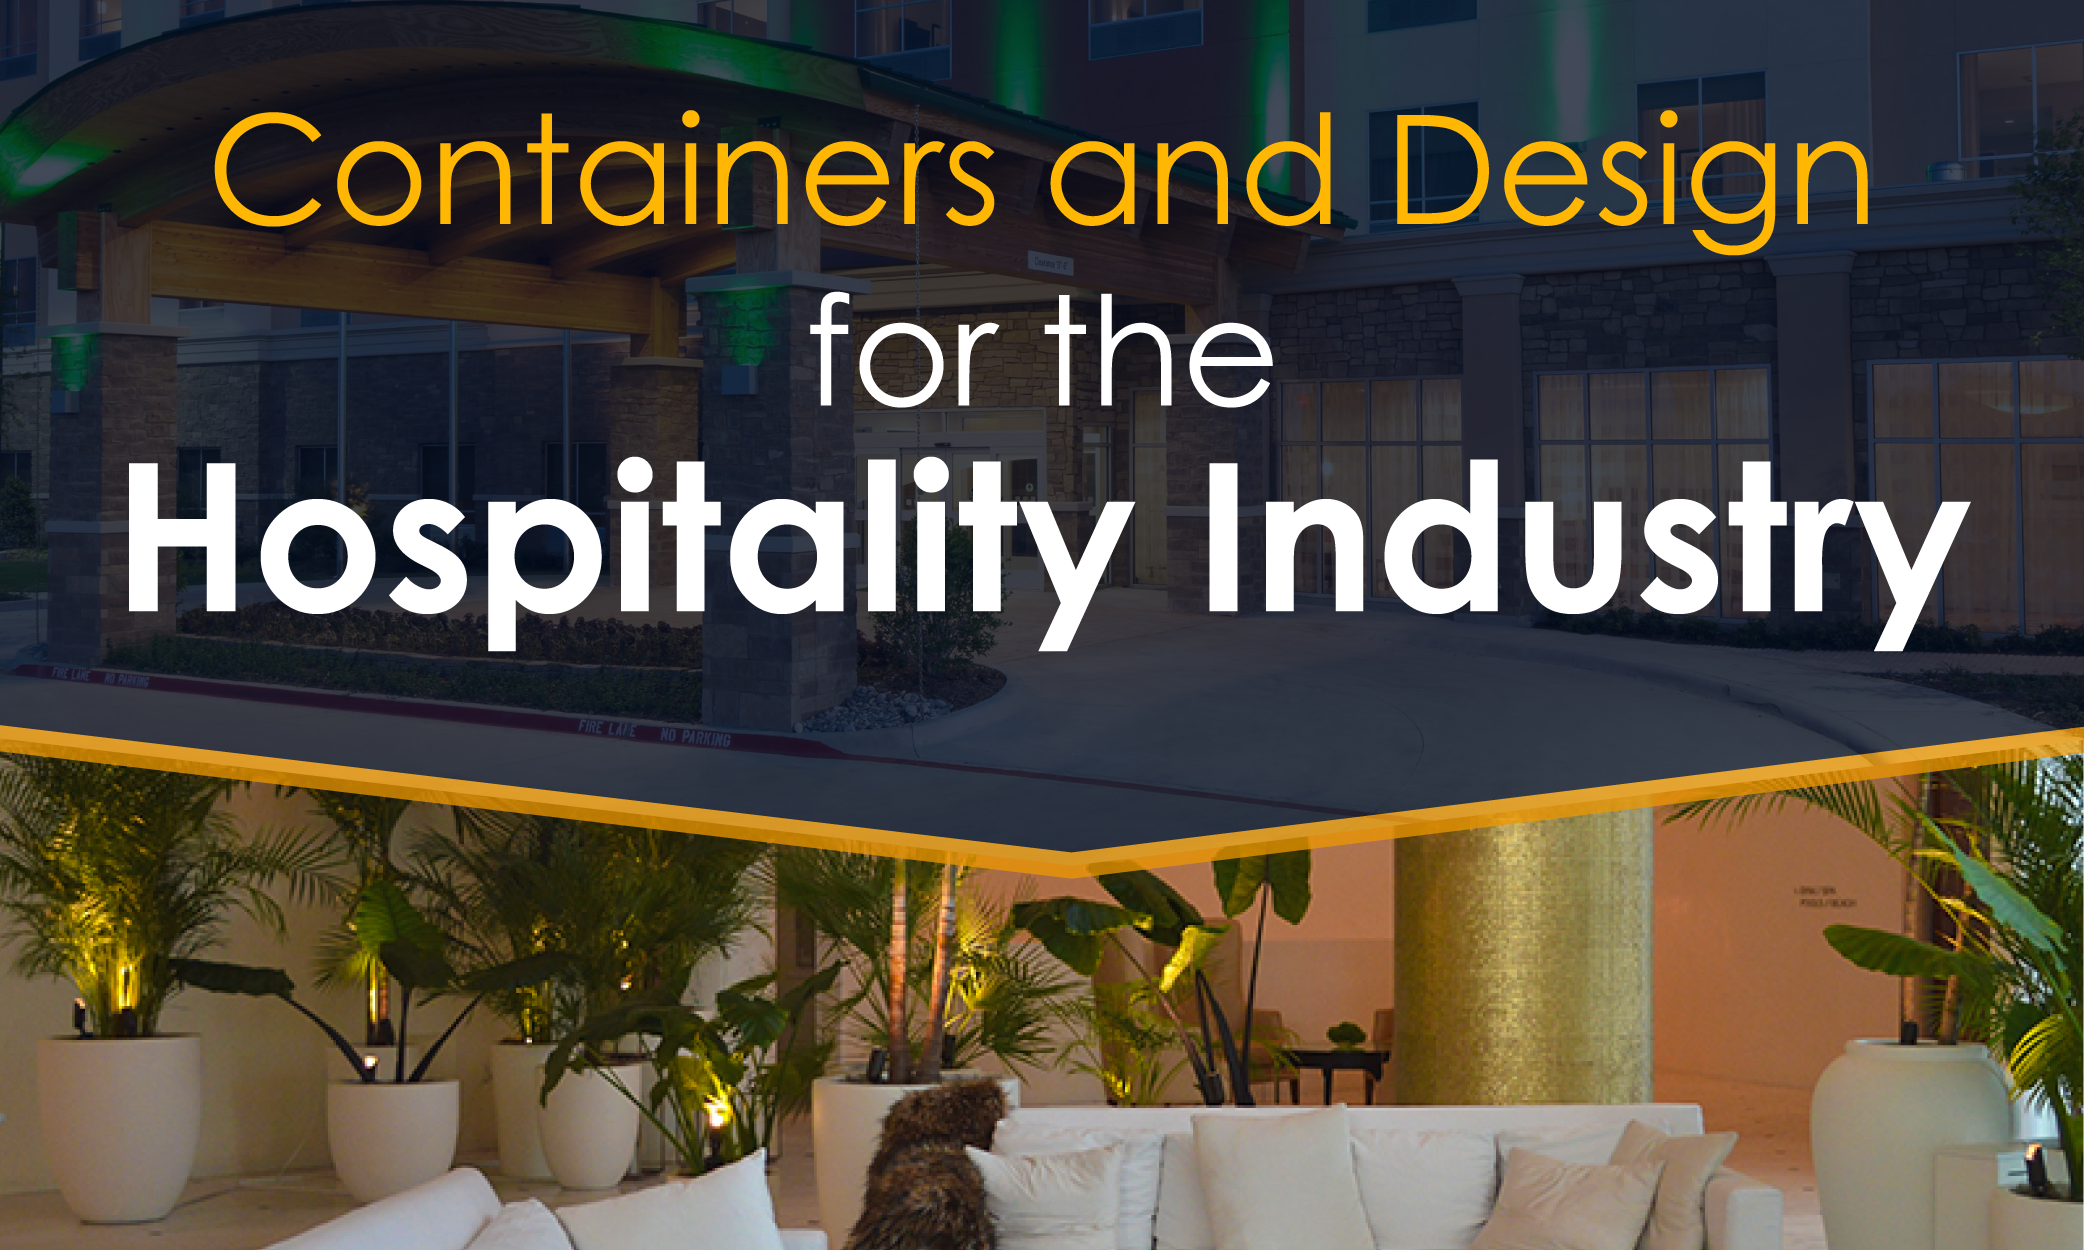 Containers and Design for the Hospitality Industry